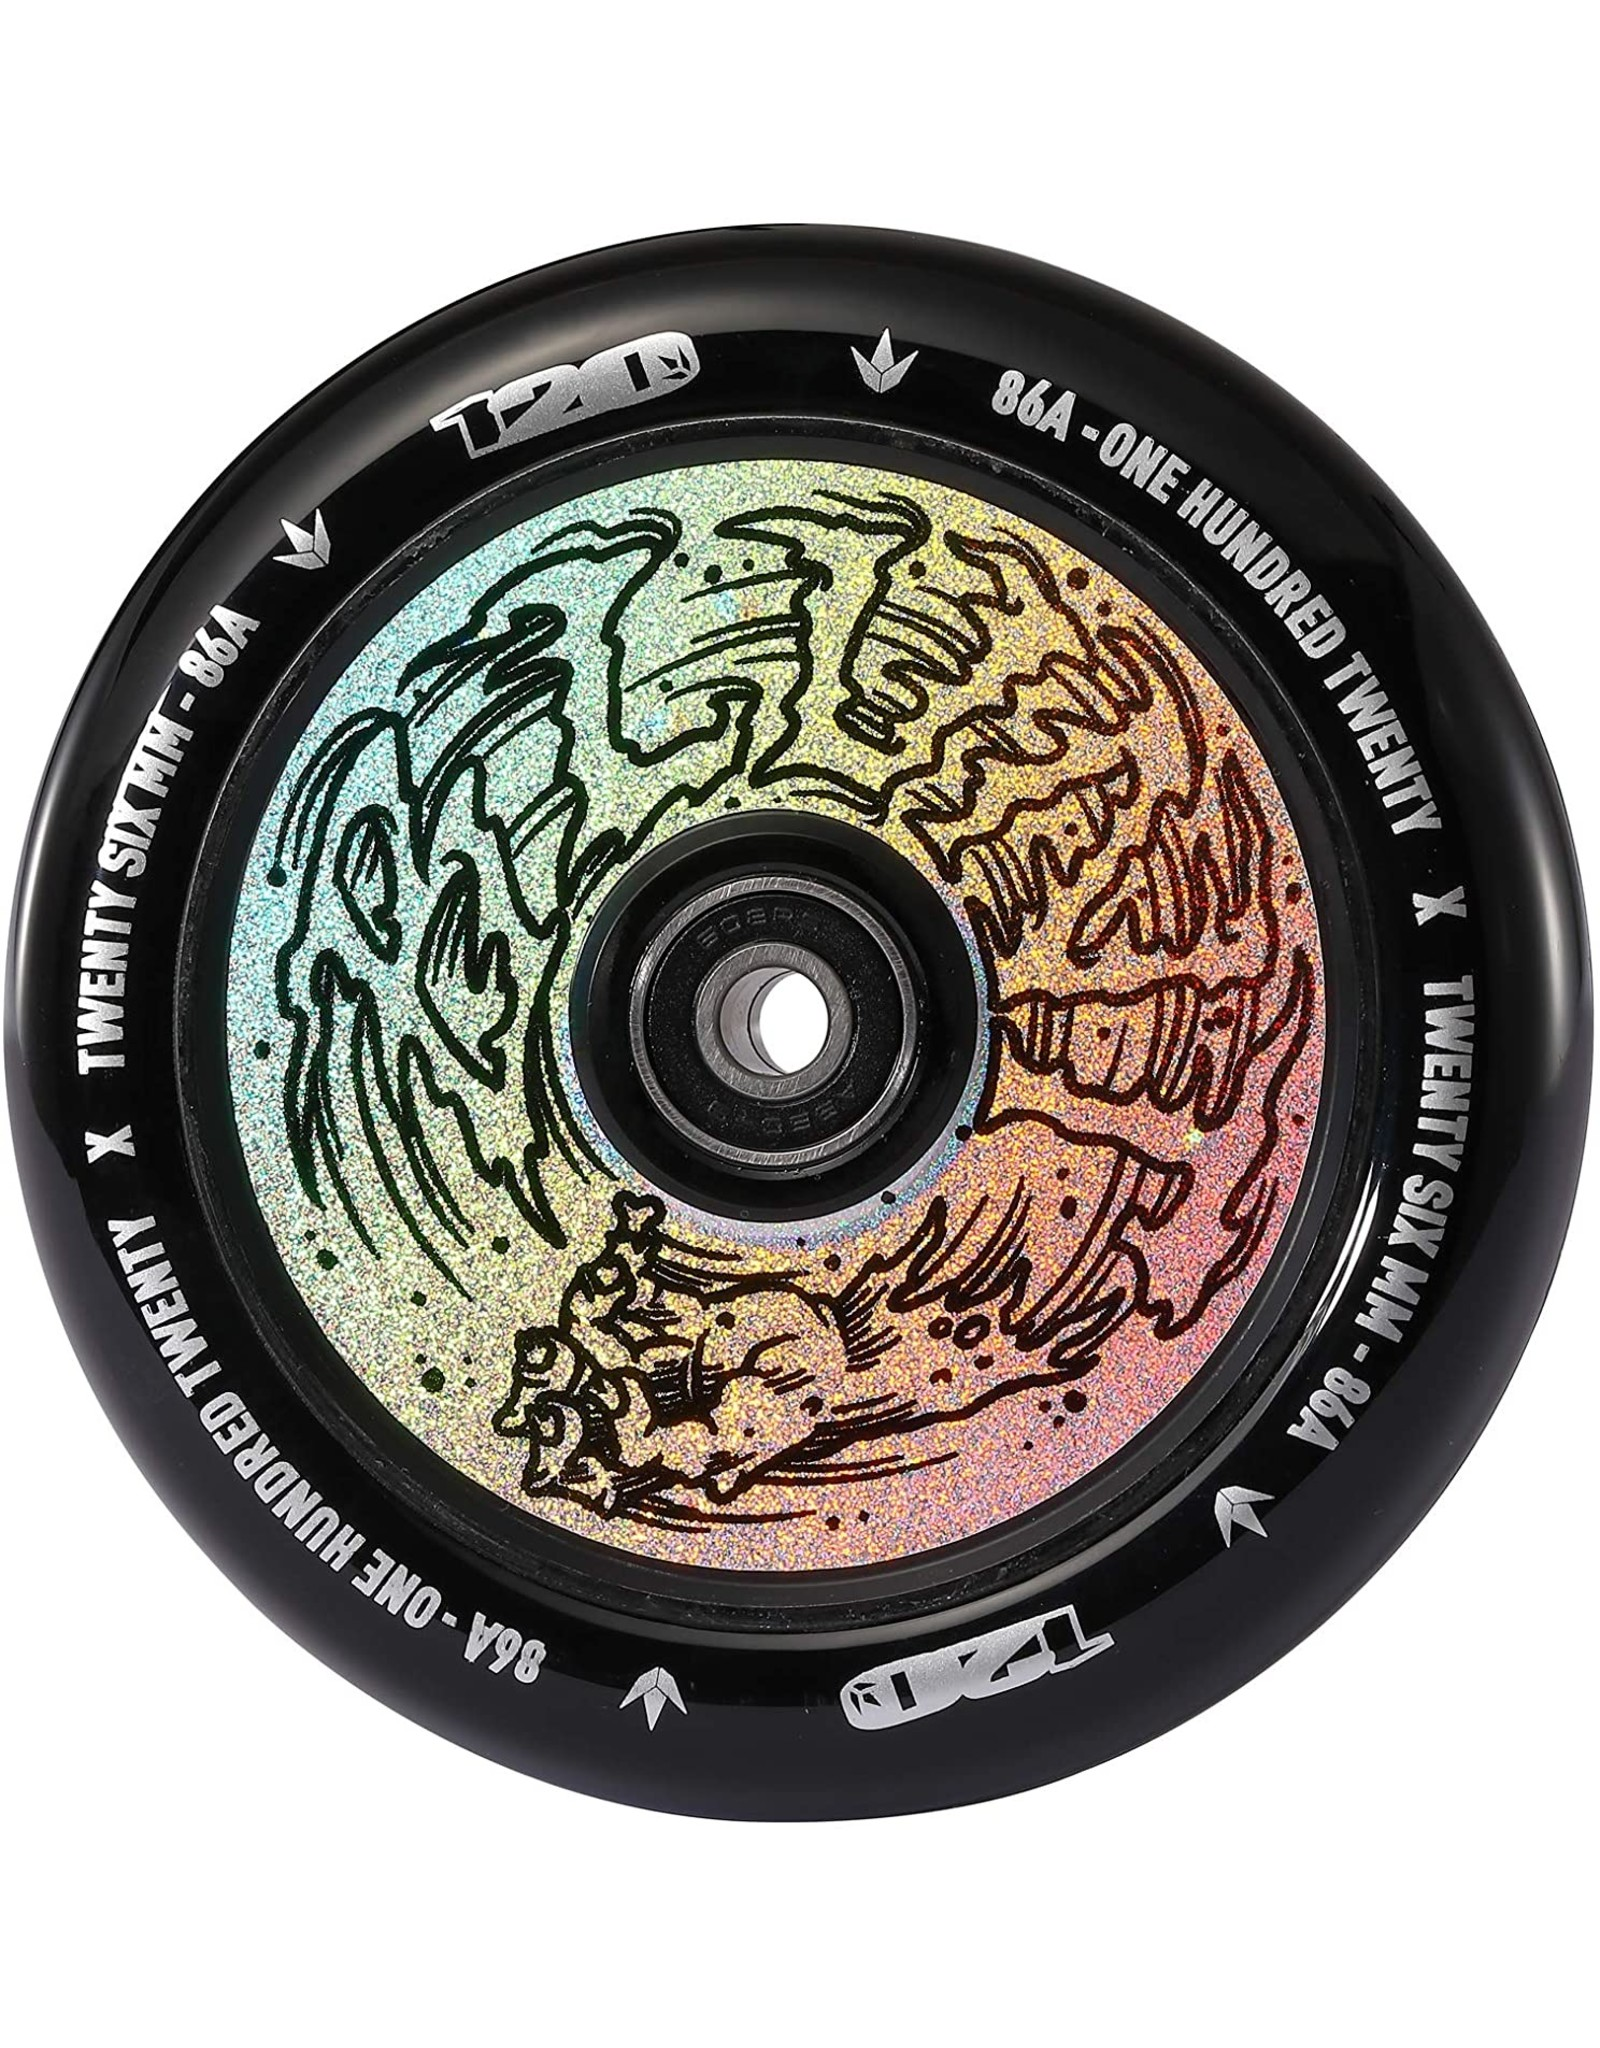 Envy Roue Envy Hollow Core Hand Hologram 110mm